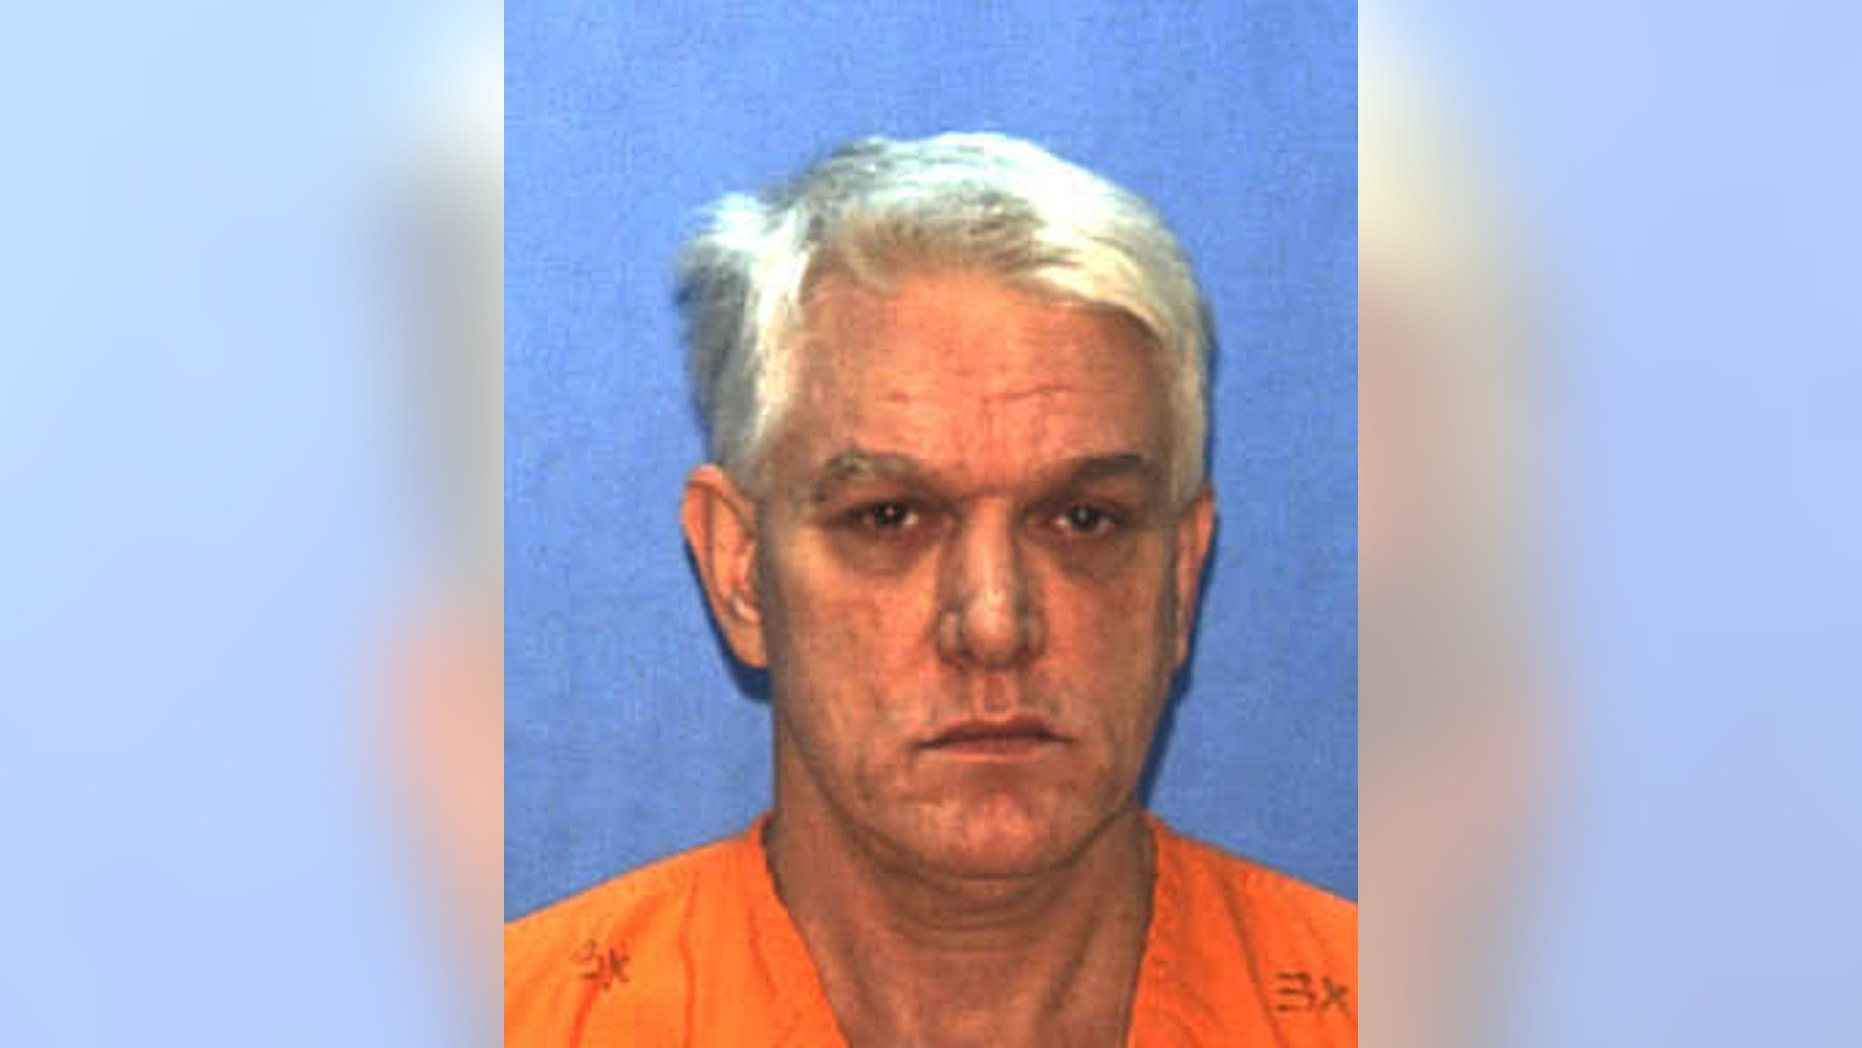 An undated photo provided by the Florida Department of Corrections shows death row inmate Elmer Carroll. Carroll is scheduled to be executed Wednesday May 28, 2013, for the rape and murder of a 10-year-old girl in 1990. Carroll murdered Christine McGowan in her Apopka, Fla., home in 1990. (AP Photo/Florida Department of Corrections, HO)